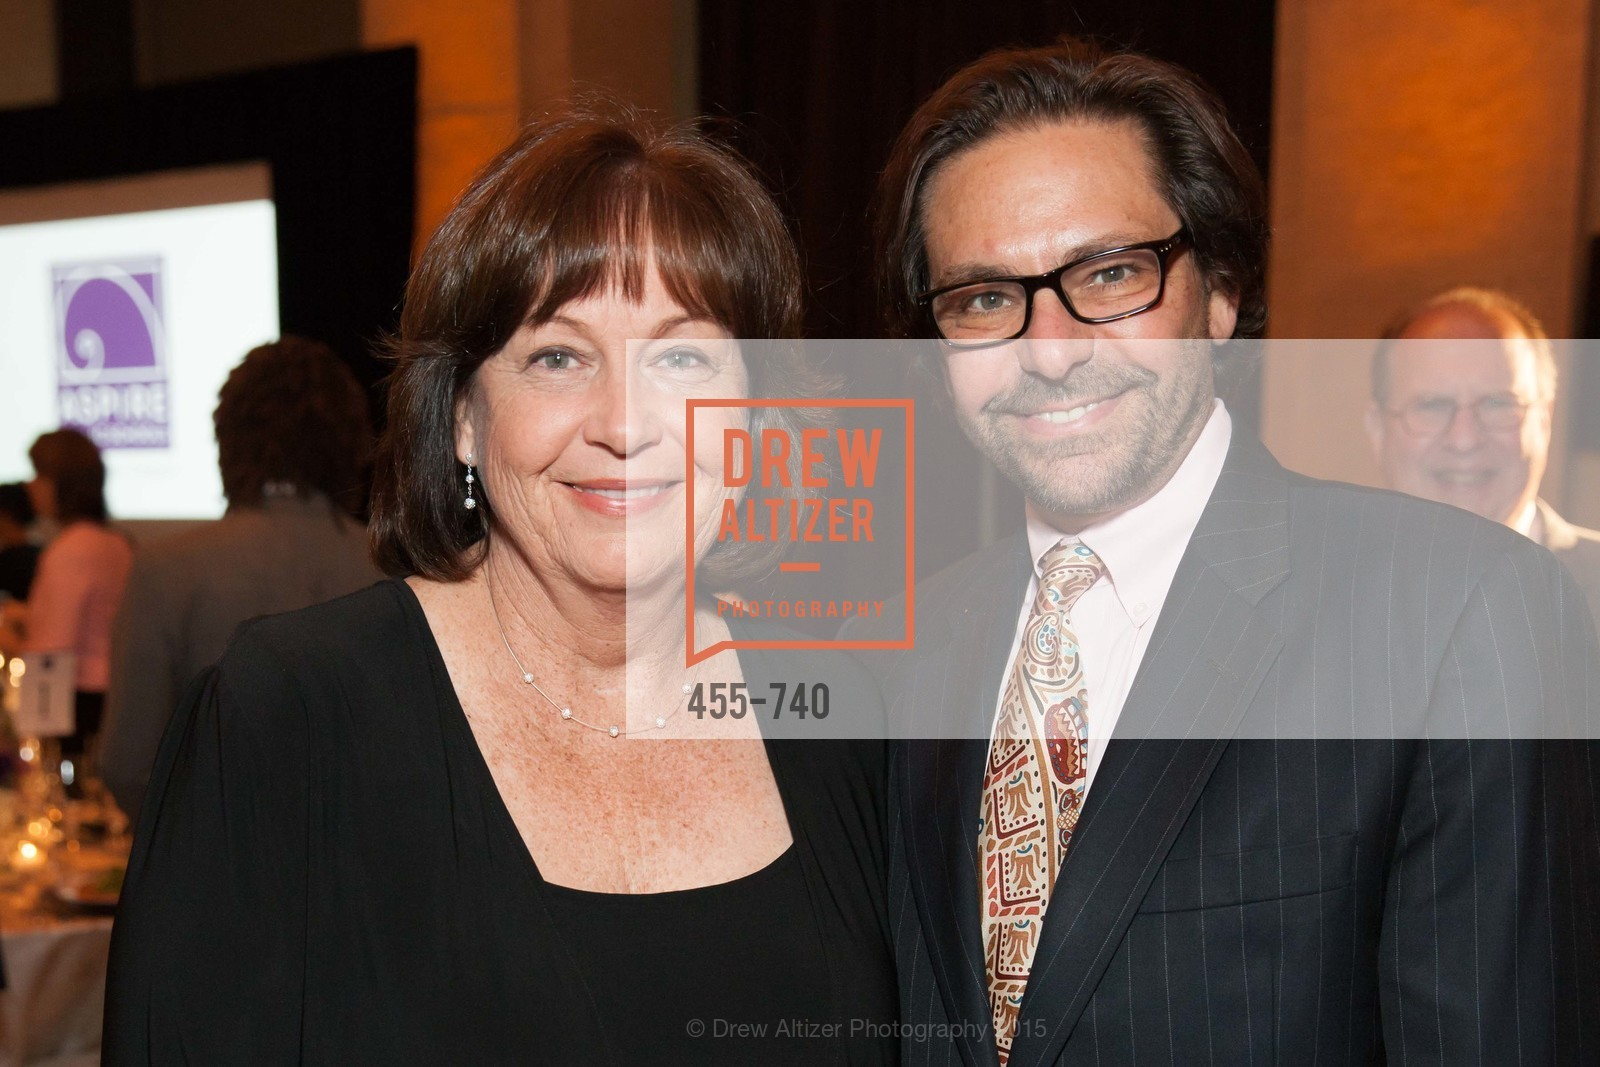 Susan Bedard, John Chino, Aspire Annual College for Certain Dinne, US, May 21st, 2015,Drew Altizer, Drew Altizer Photography, full-service agency, private events, San Francisco photographer, photographer california